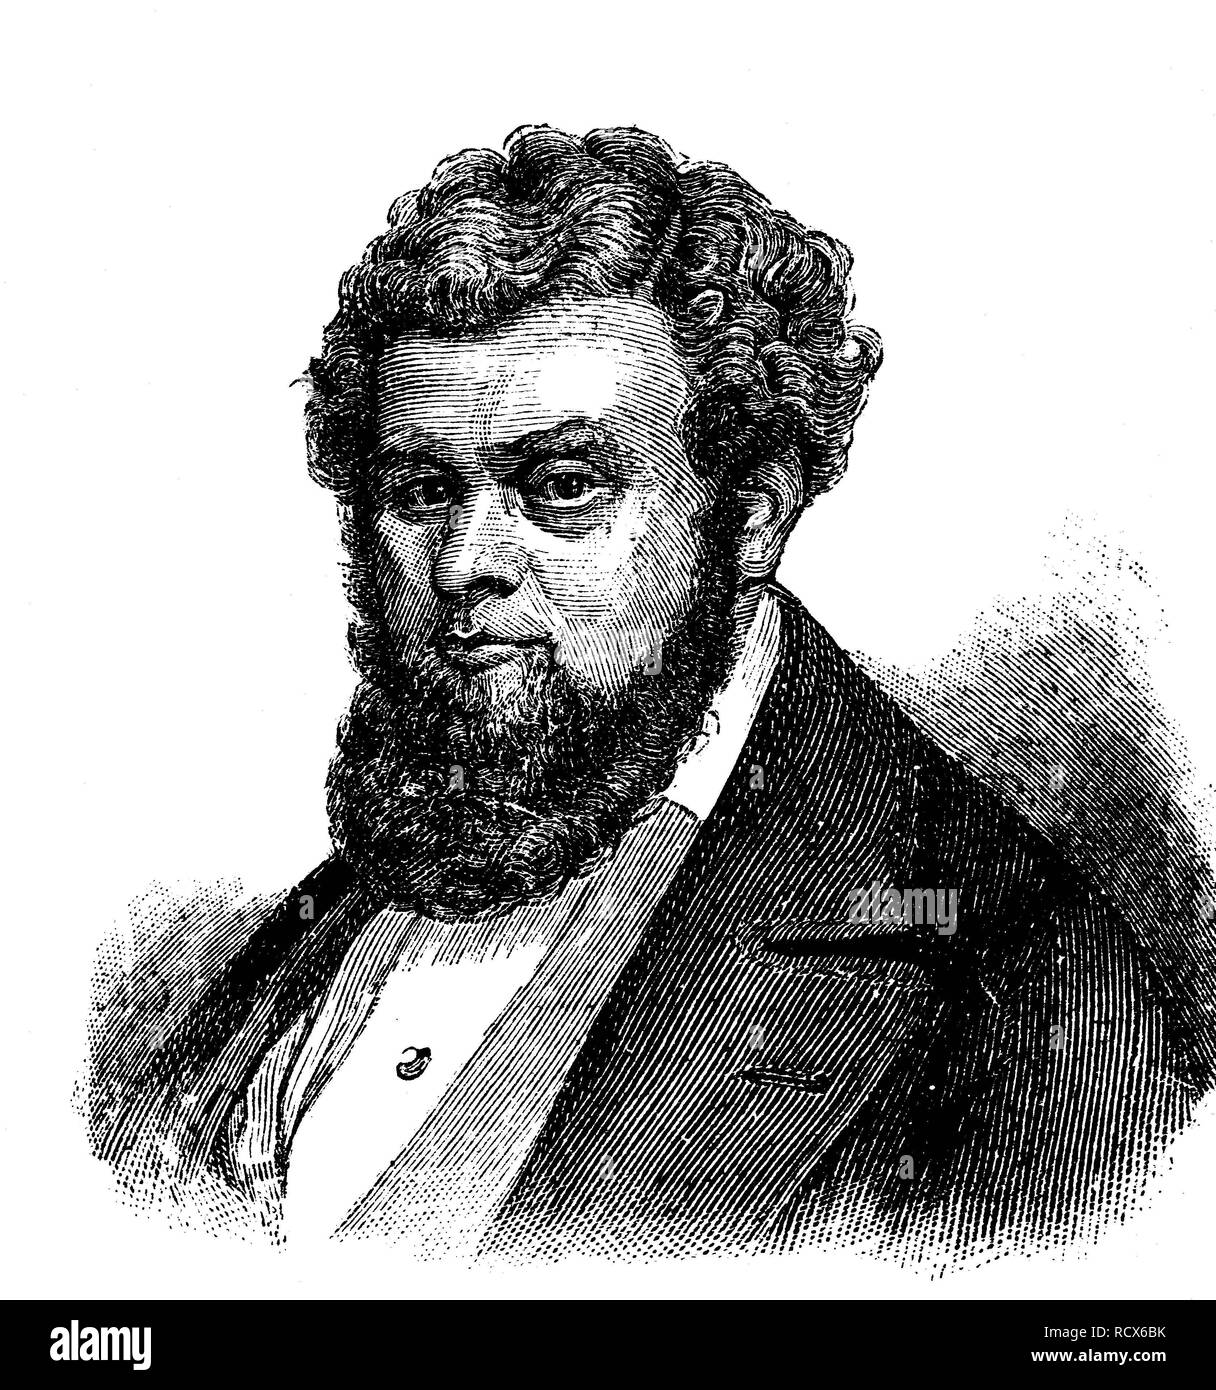 Robert Blum, 1807 - 1848, German politician, publicist, publisher and poet before and during the March Revolution of 1848 - Stock Image